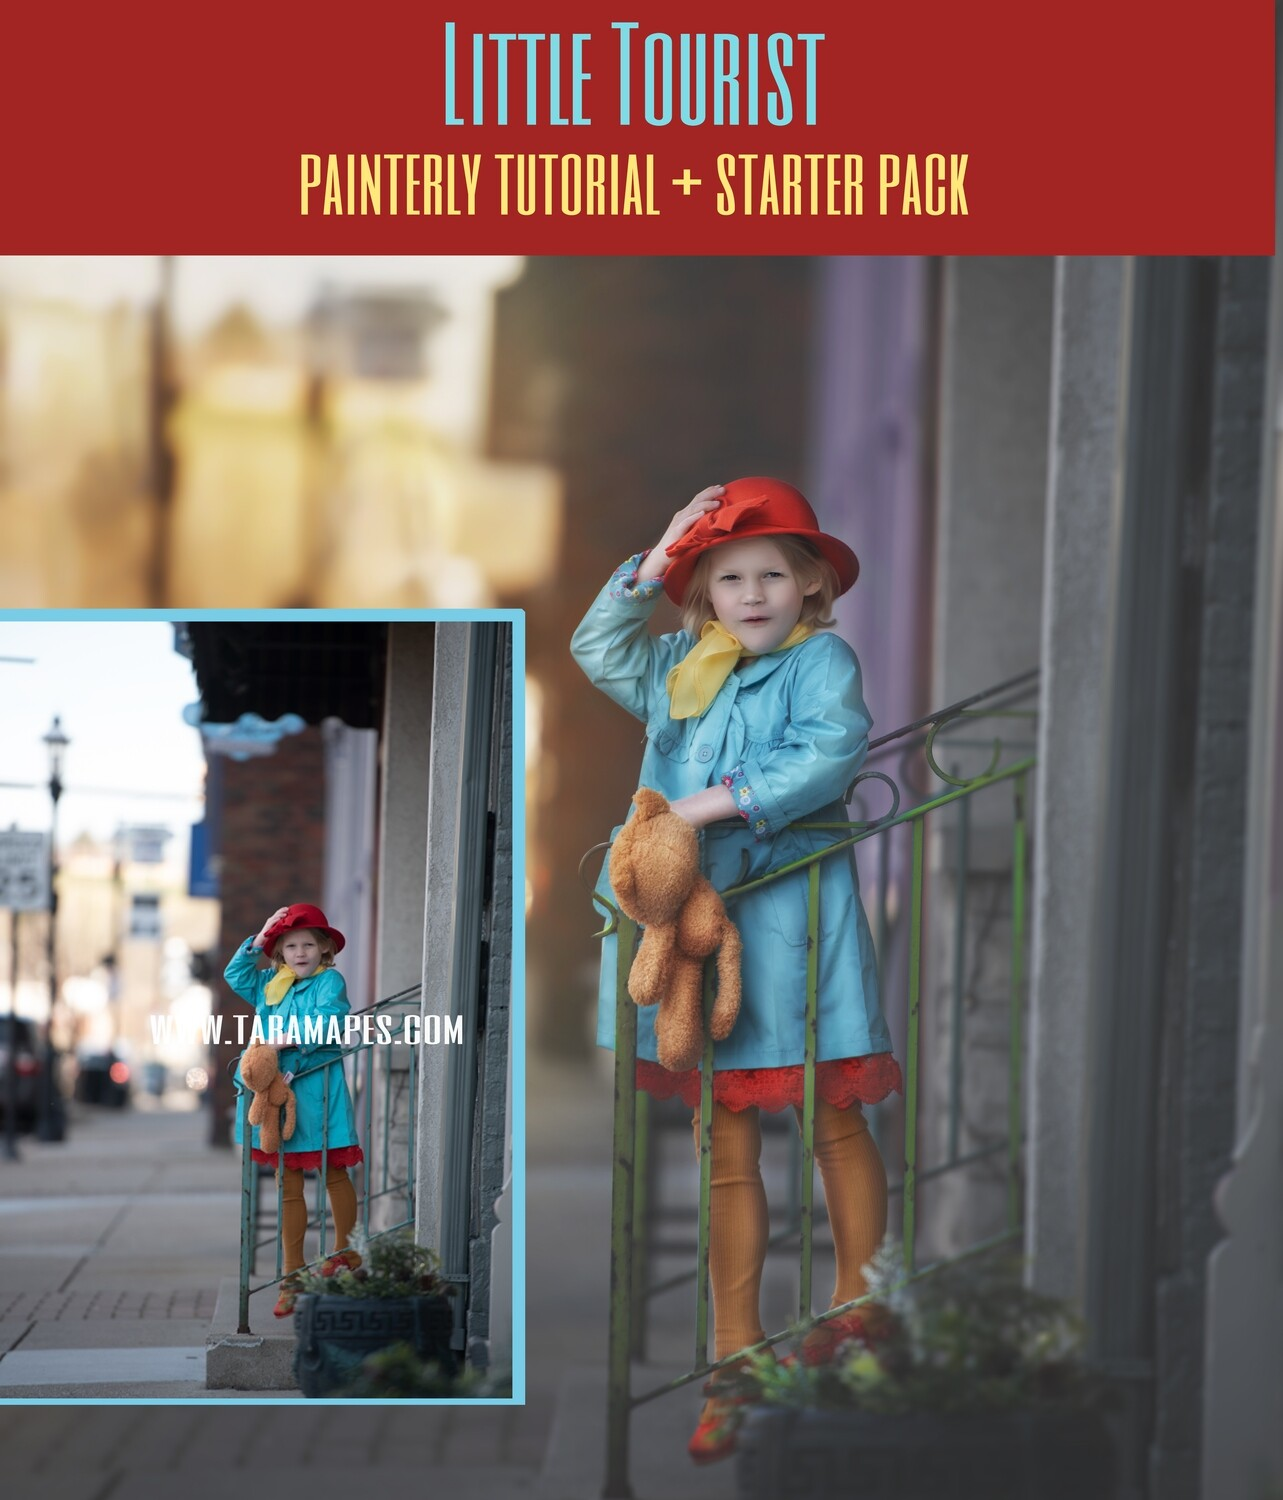 The Little Tourist Painterly Editing Photoshop Tutorial with STARTER PACK- Fine Art Tutorial by Tara Mapes